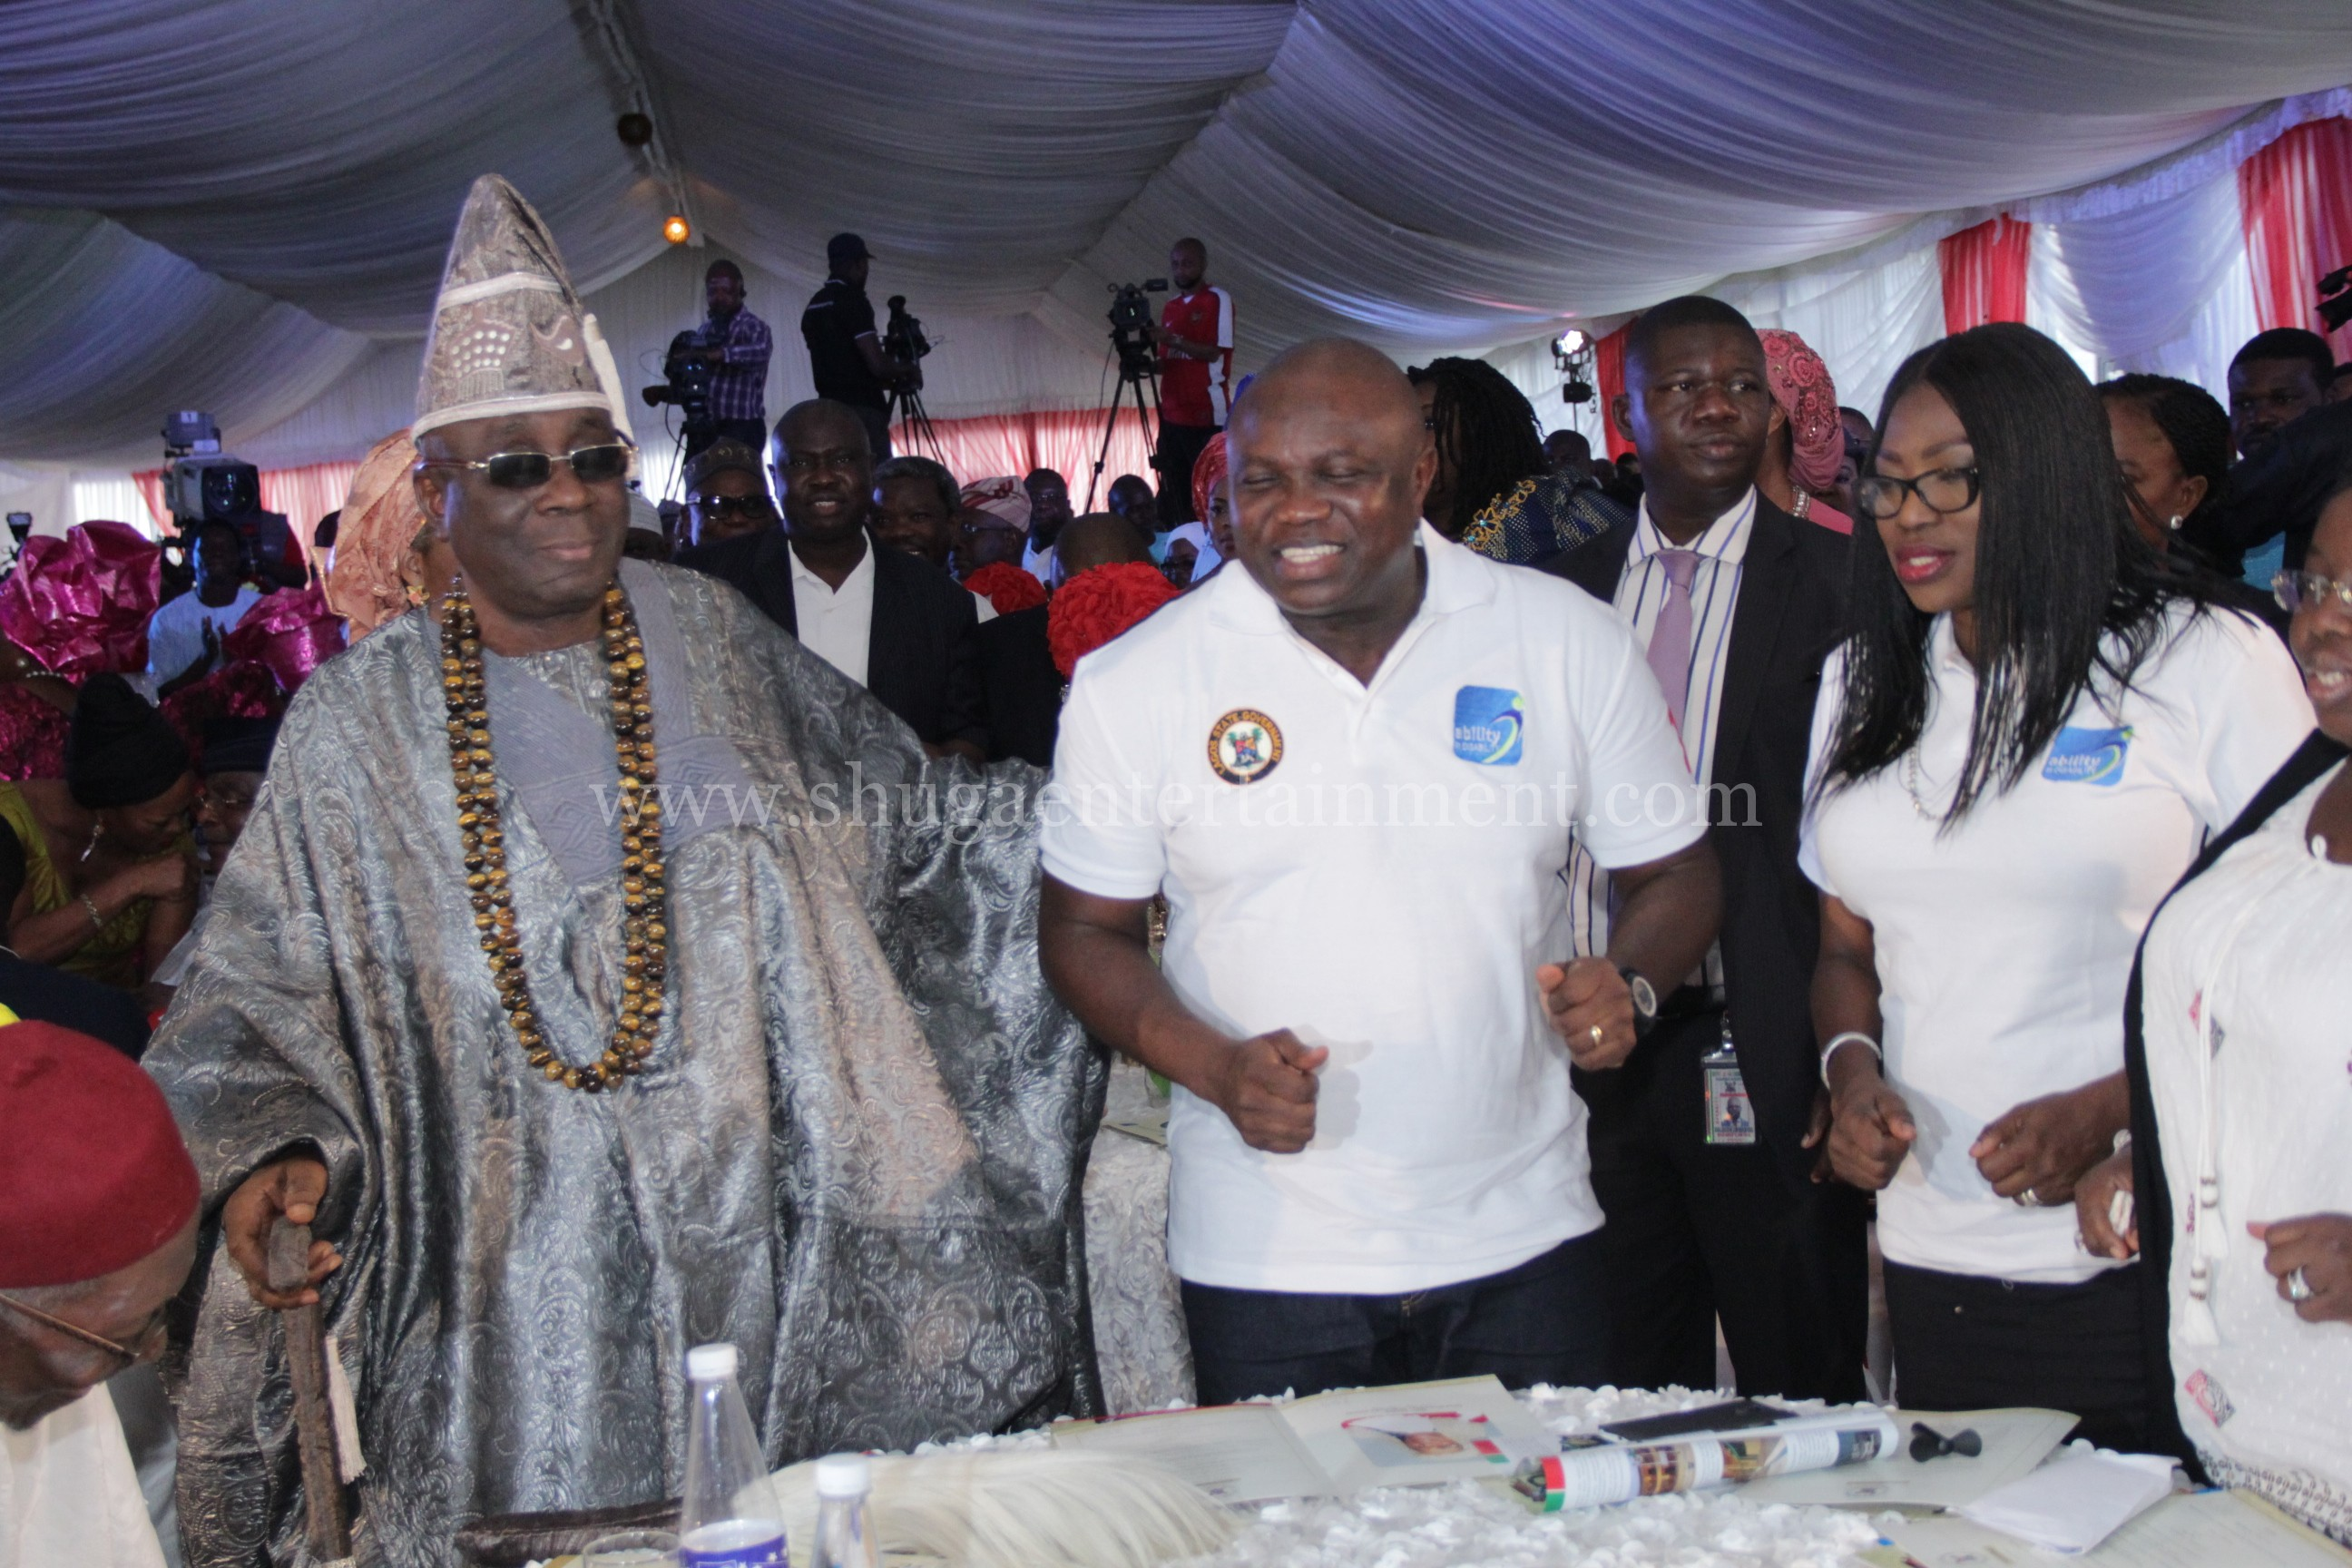 Shuga band-Top dignitaries - The Oba of Lagos- Oba Rilwan Akiolu, Gov. Akinwumi Ambode (Governor of Lagos), Mrs. Bolanle Ambode &